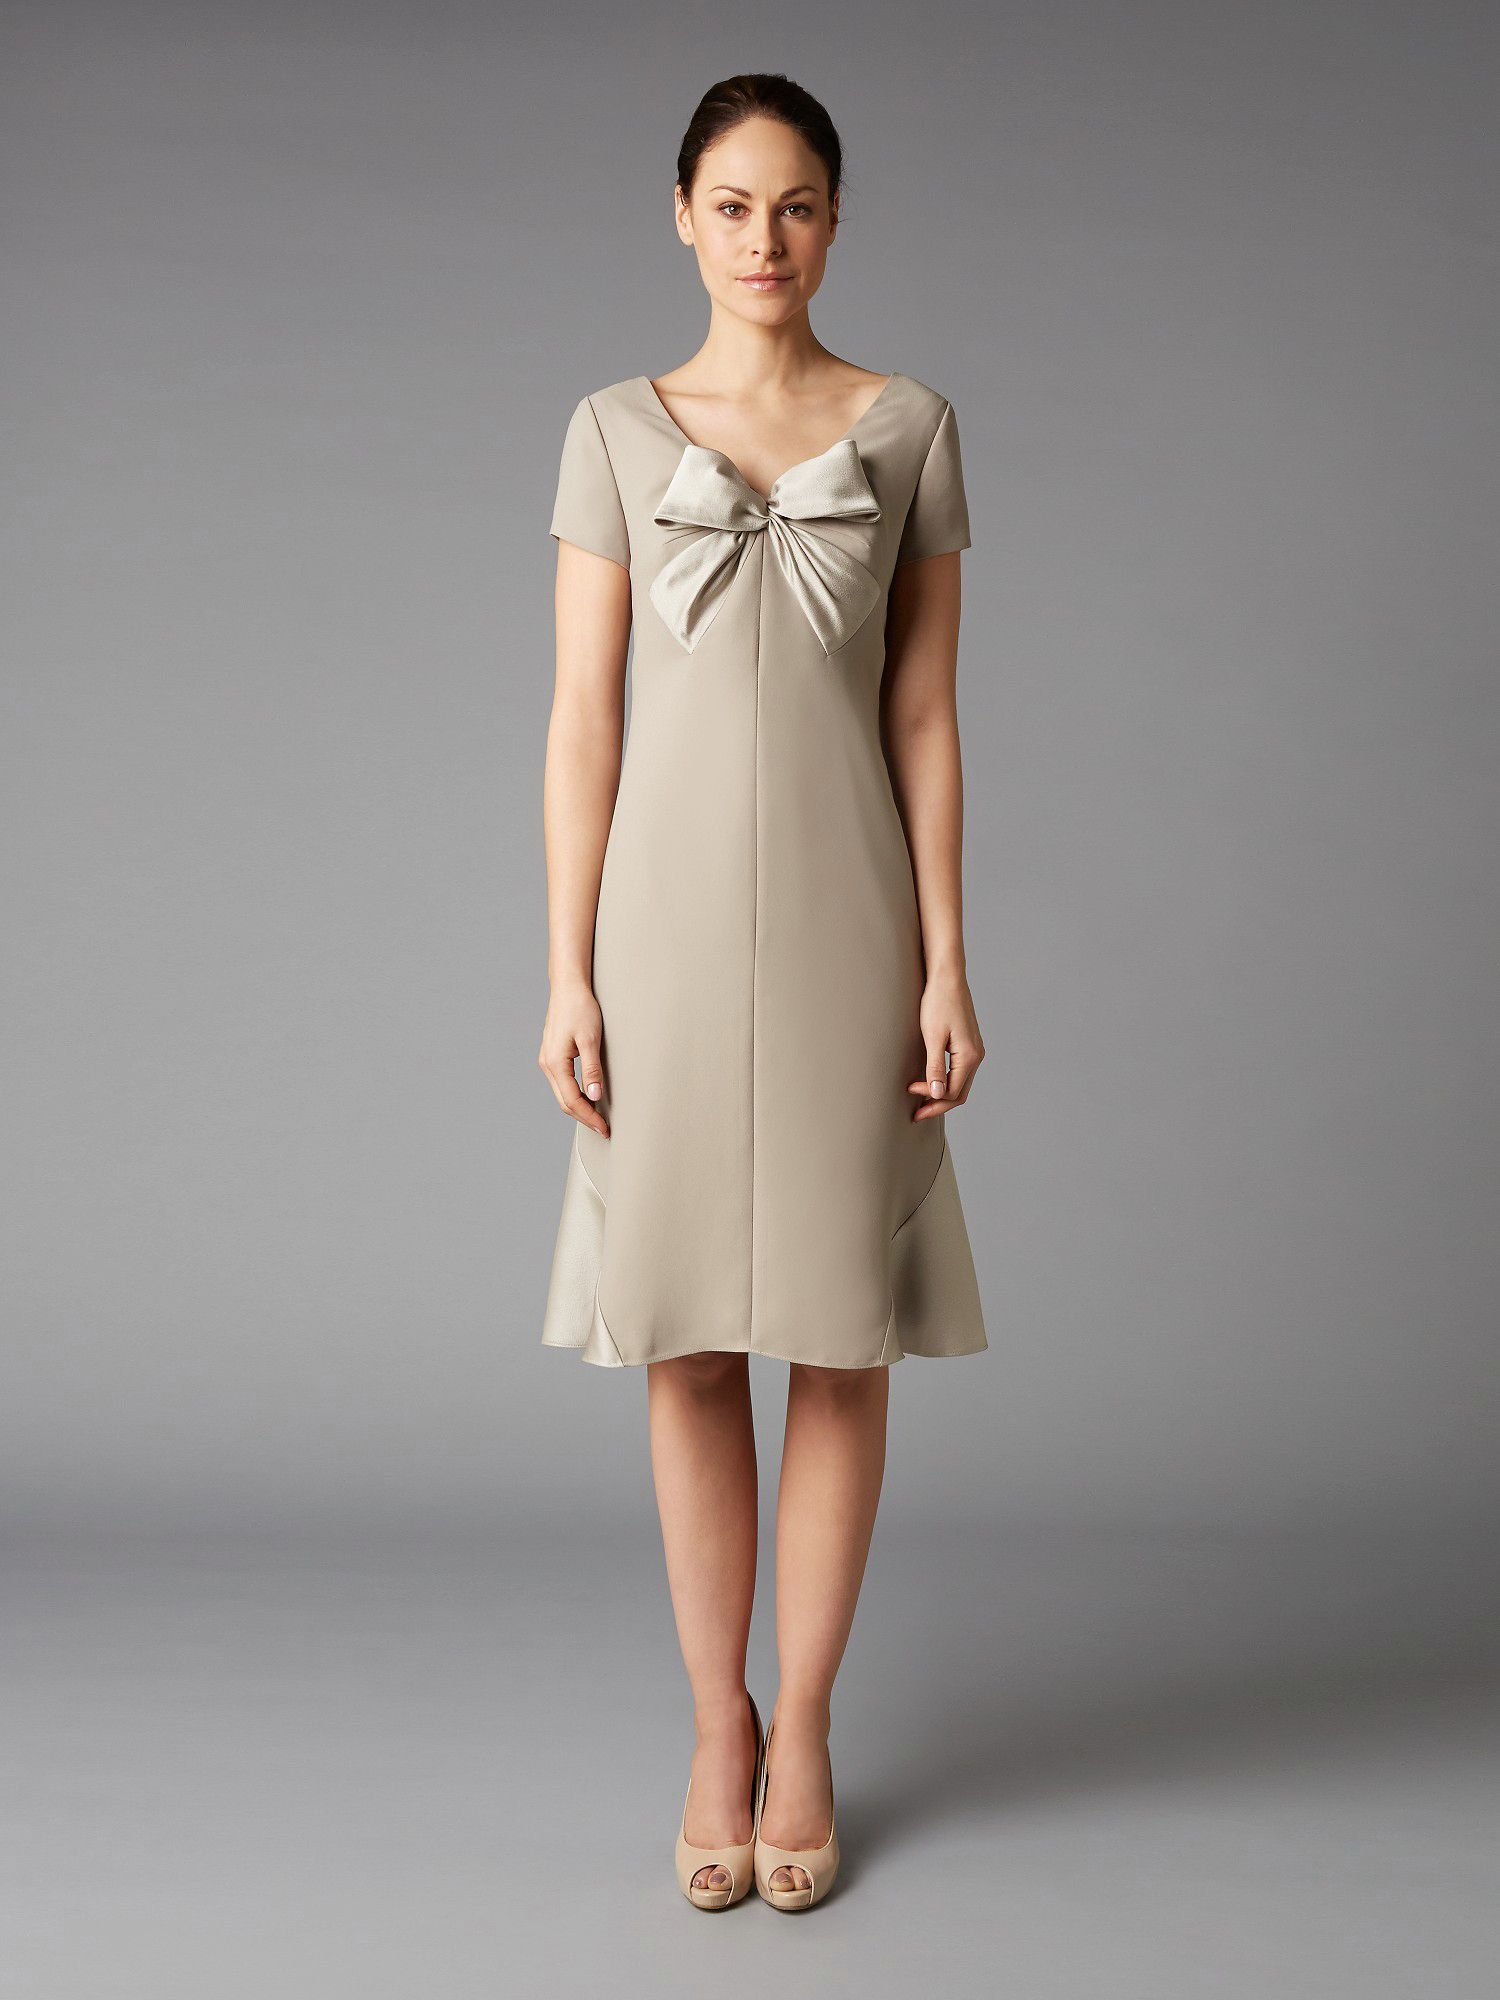 Lorcan Mullany Oyster Bow Satin Dress